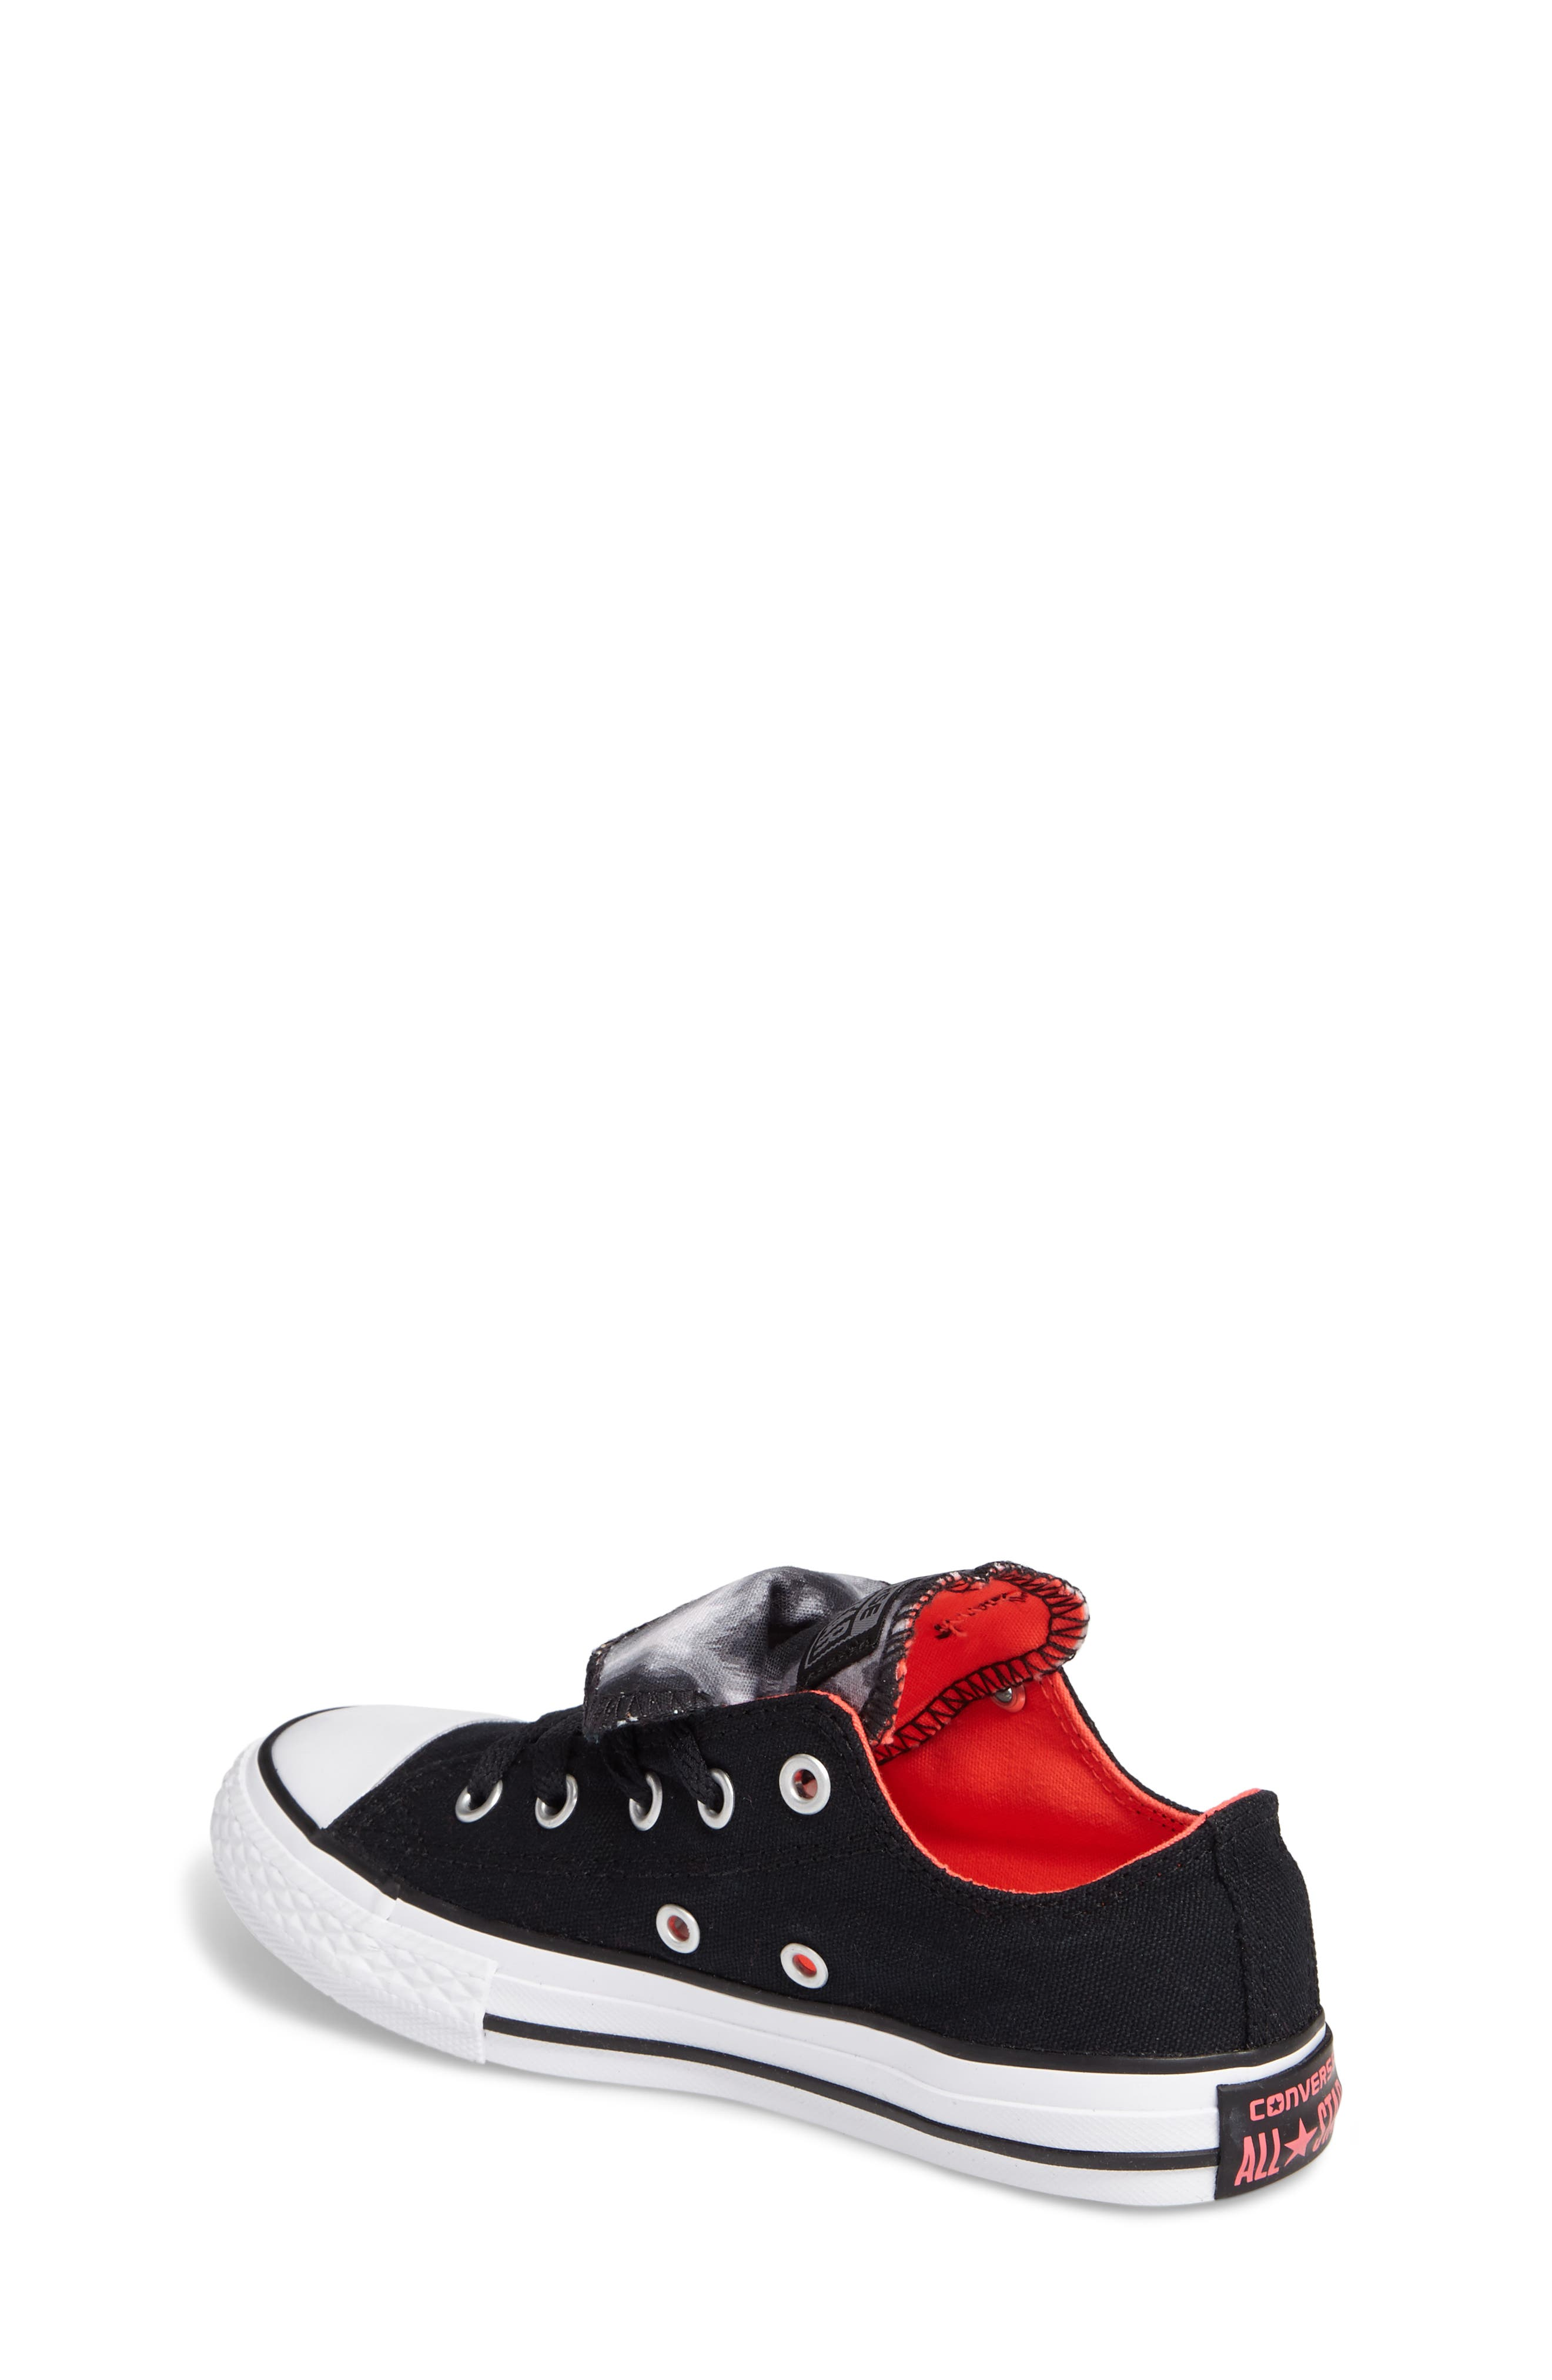 Alternate Image 2  - Converse All Star® Double Tongue Sneaker (Toddler, Little Kid, Big Kid)